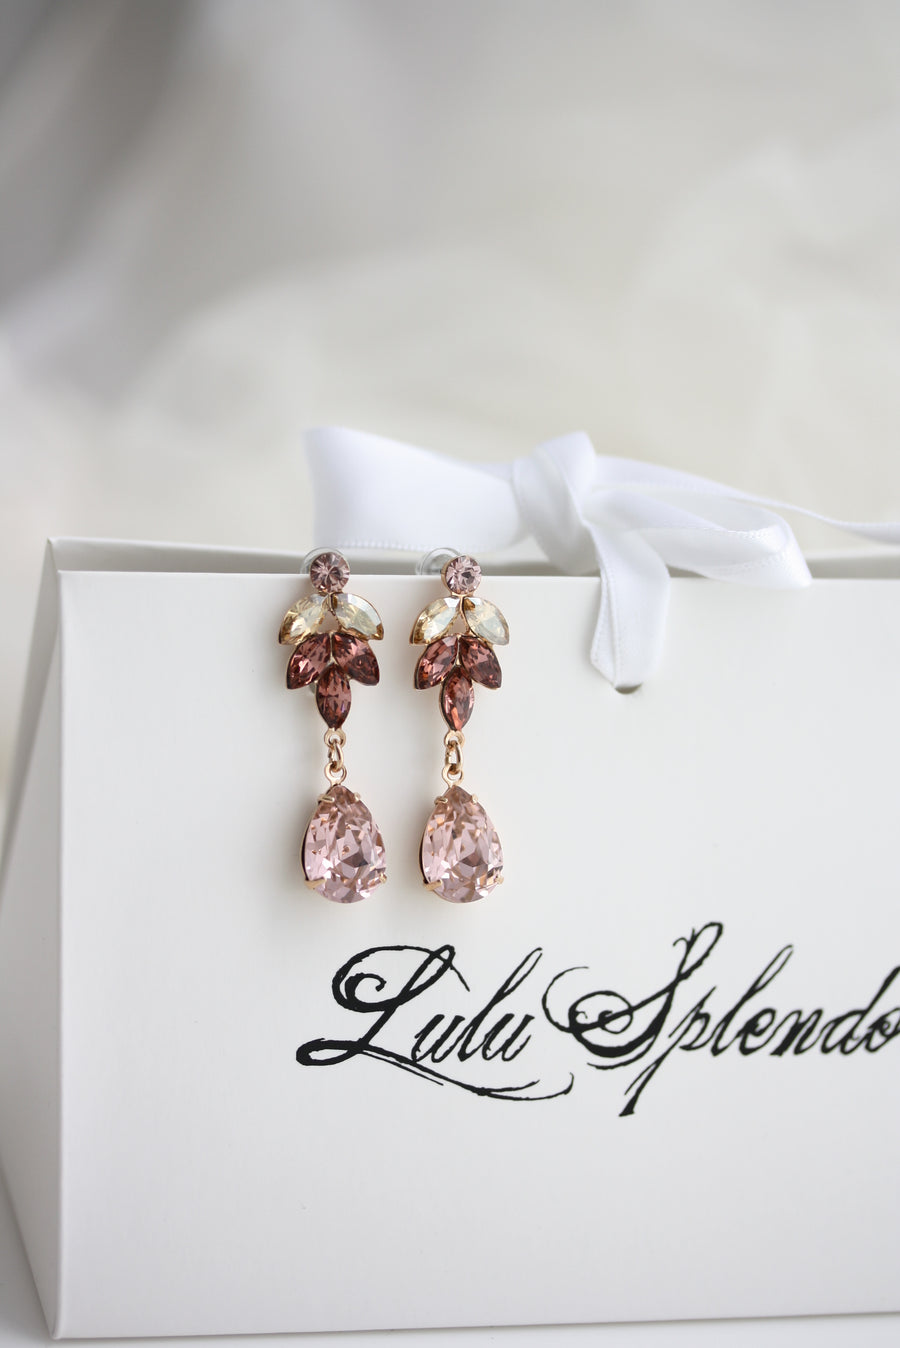 Blush Pink Amelia Crystal Wedding Earrings - Lulu Splendor